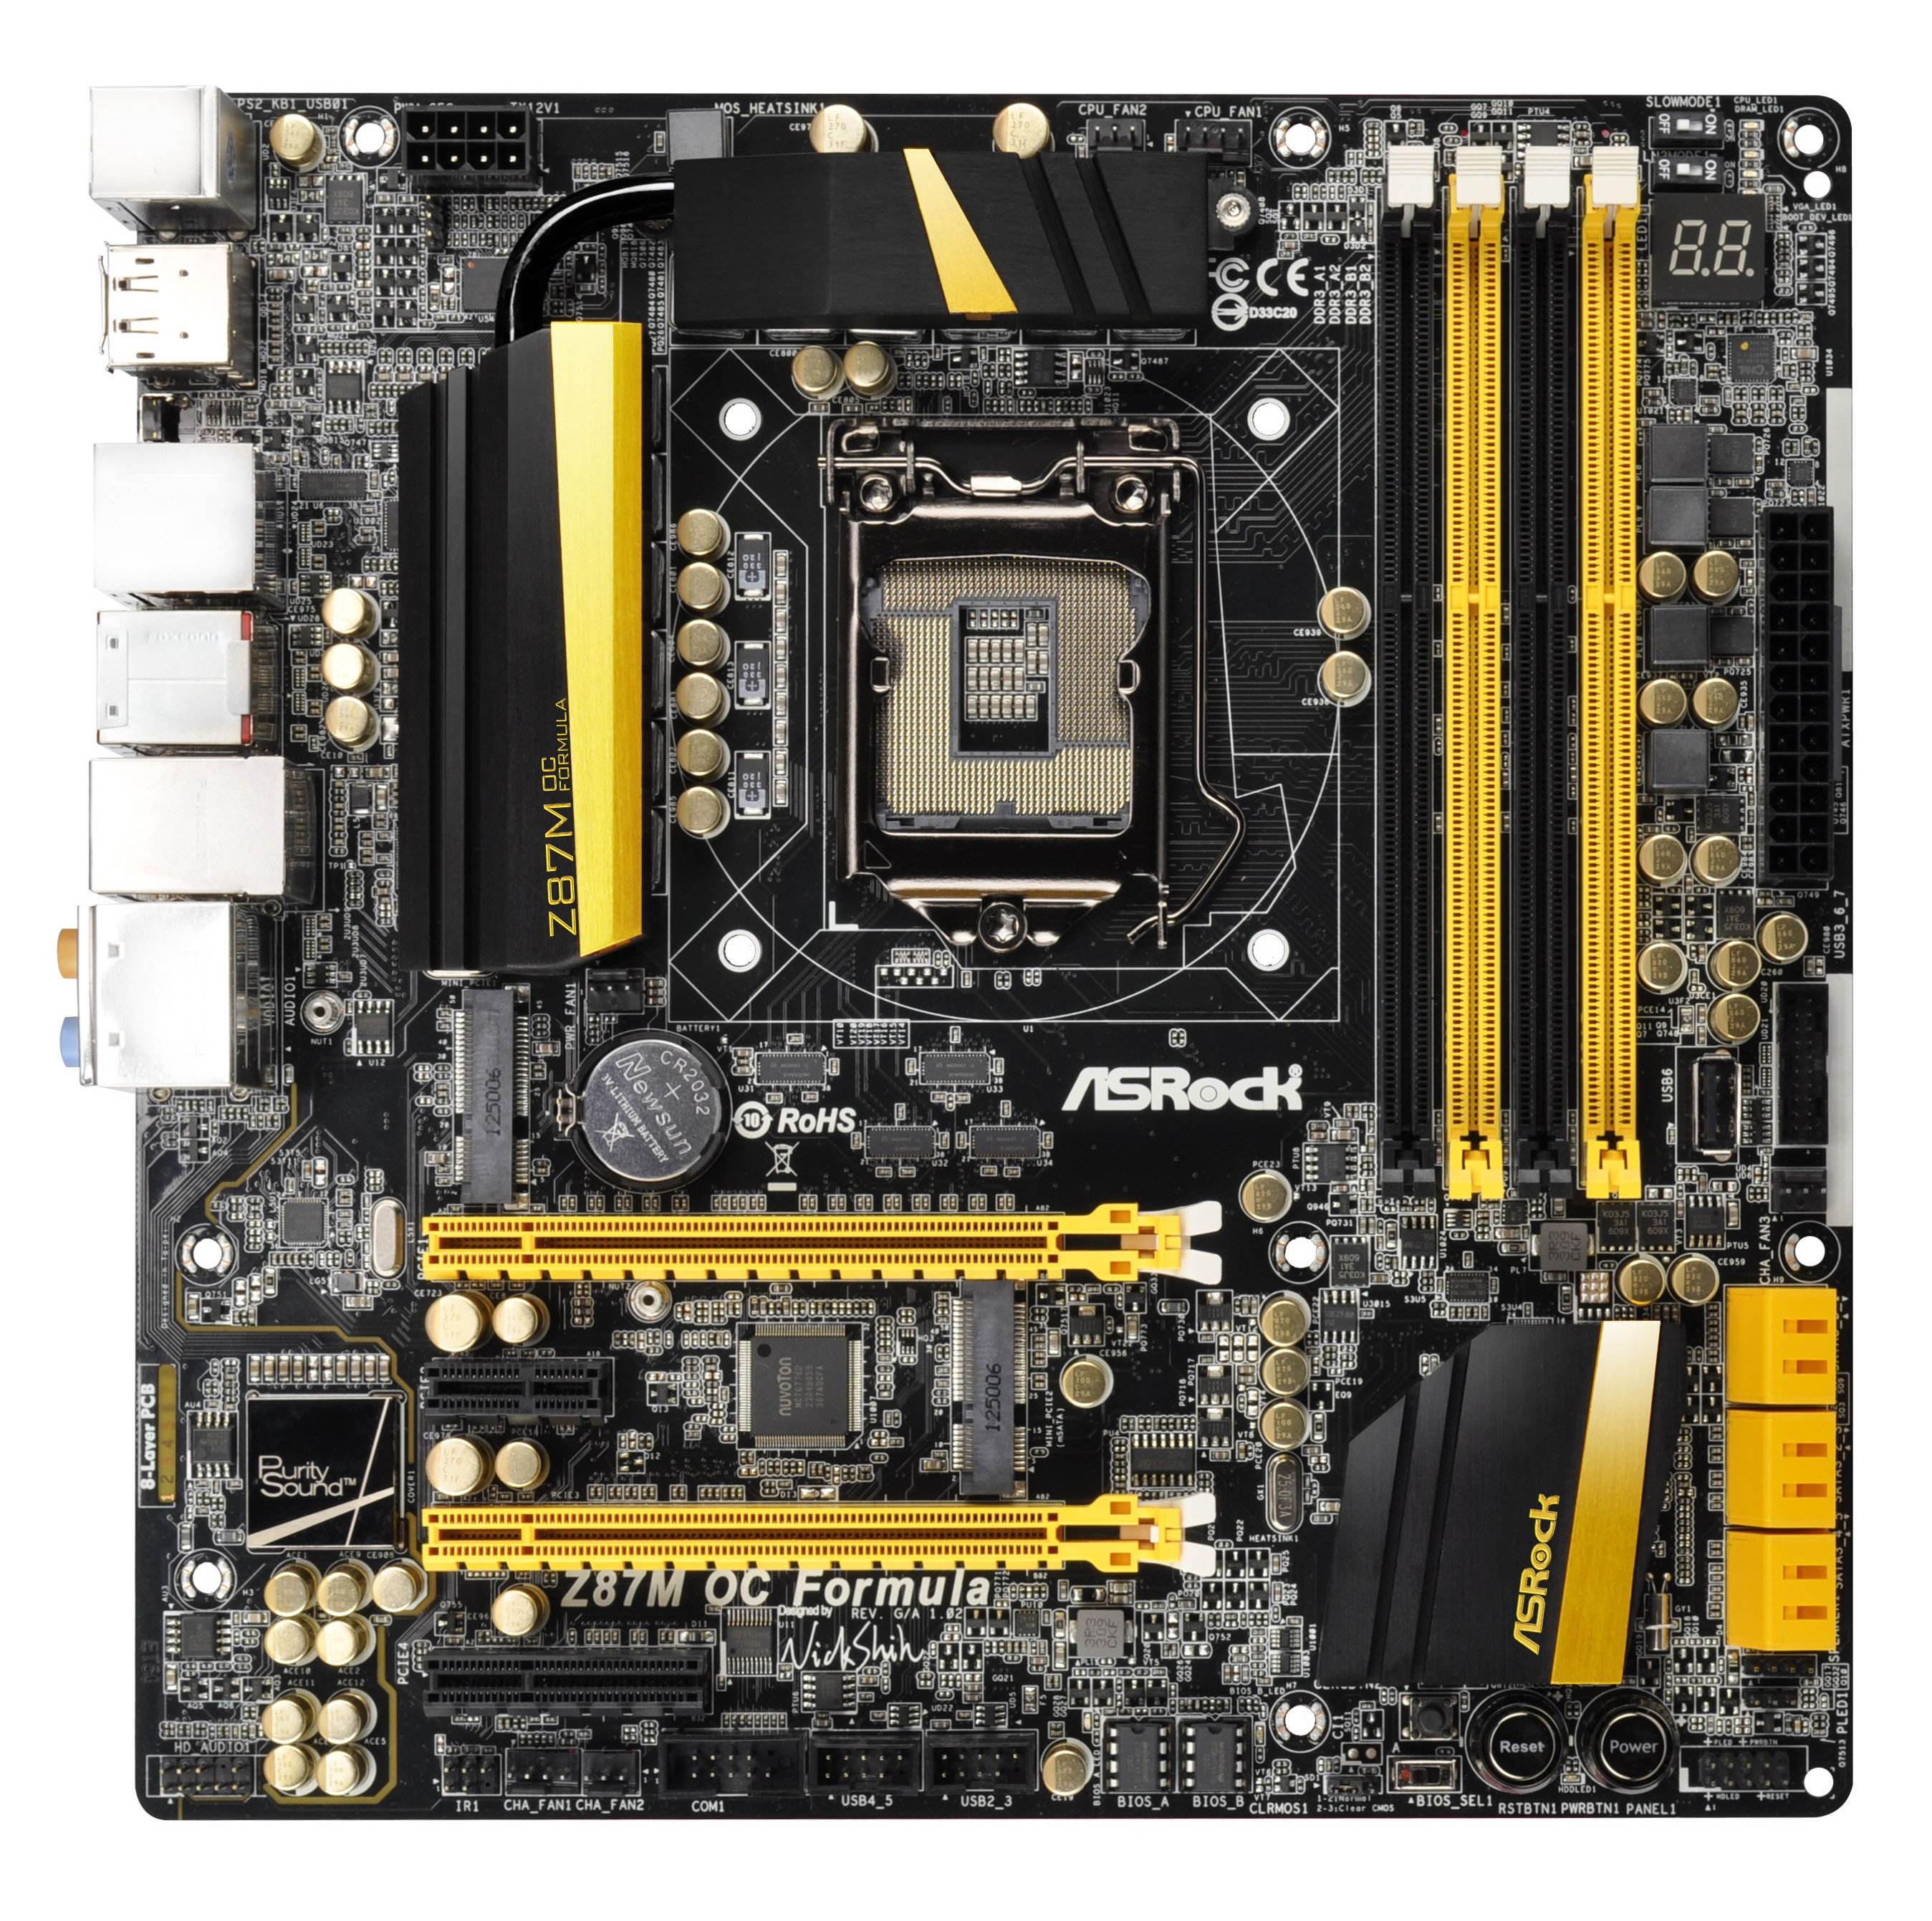 ASRock Z87 OC Formula/ac Motherboard Treiber Windows 10